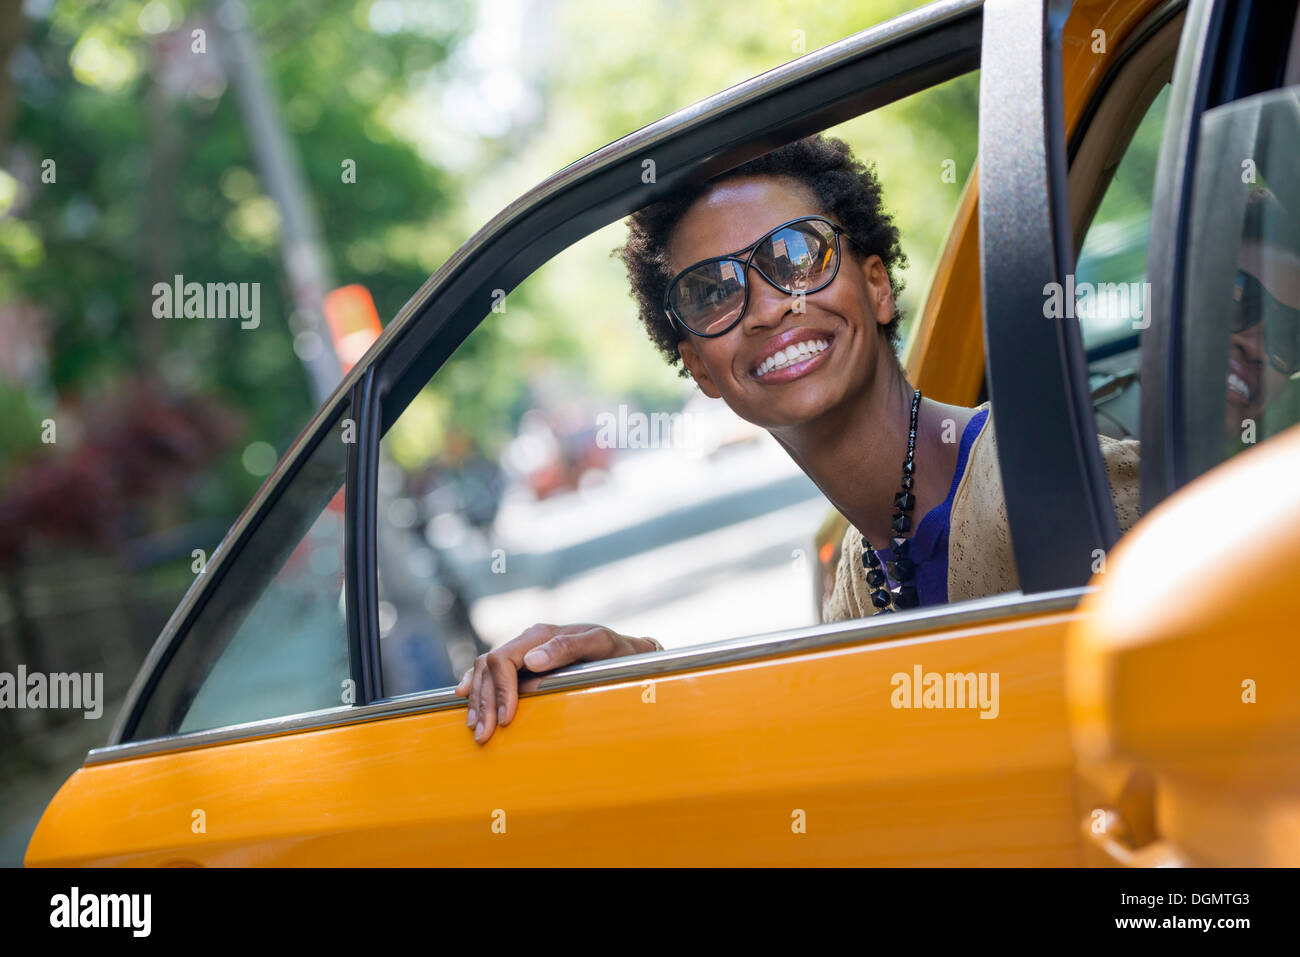 A woman getting out of the rear passenger seat of a yellow cab. - Stock Image